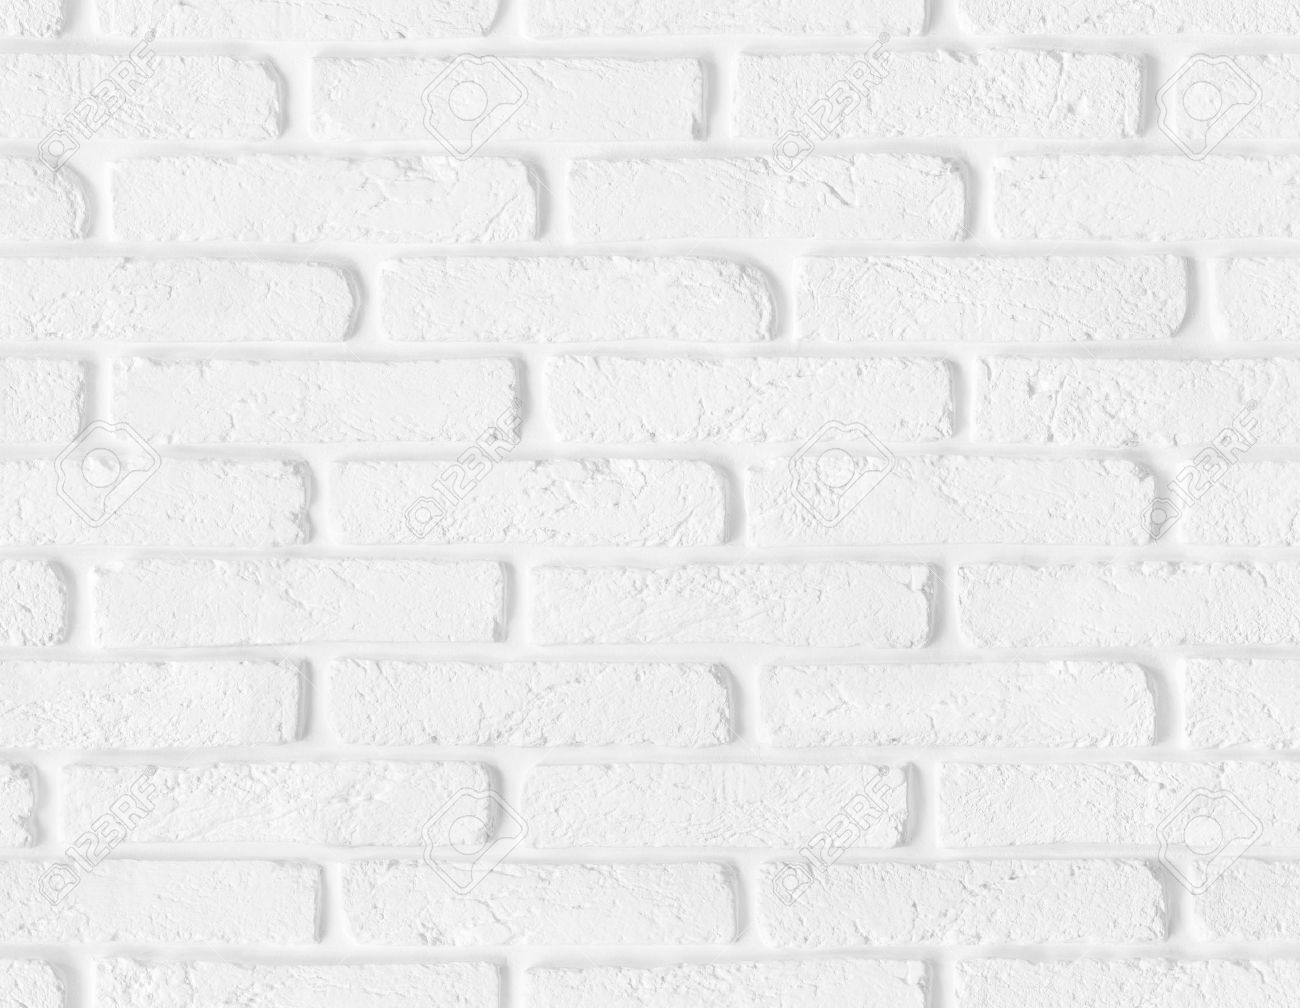 Amazing Wallpaper High Quality Brick - 20856893-seamless-white-brick-wall-texture-with-blank-copy-space-high-quality-seamless-background  HD_12694.jpg